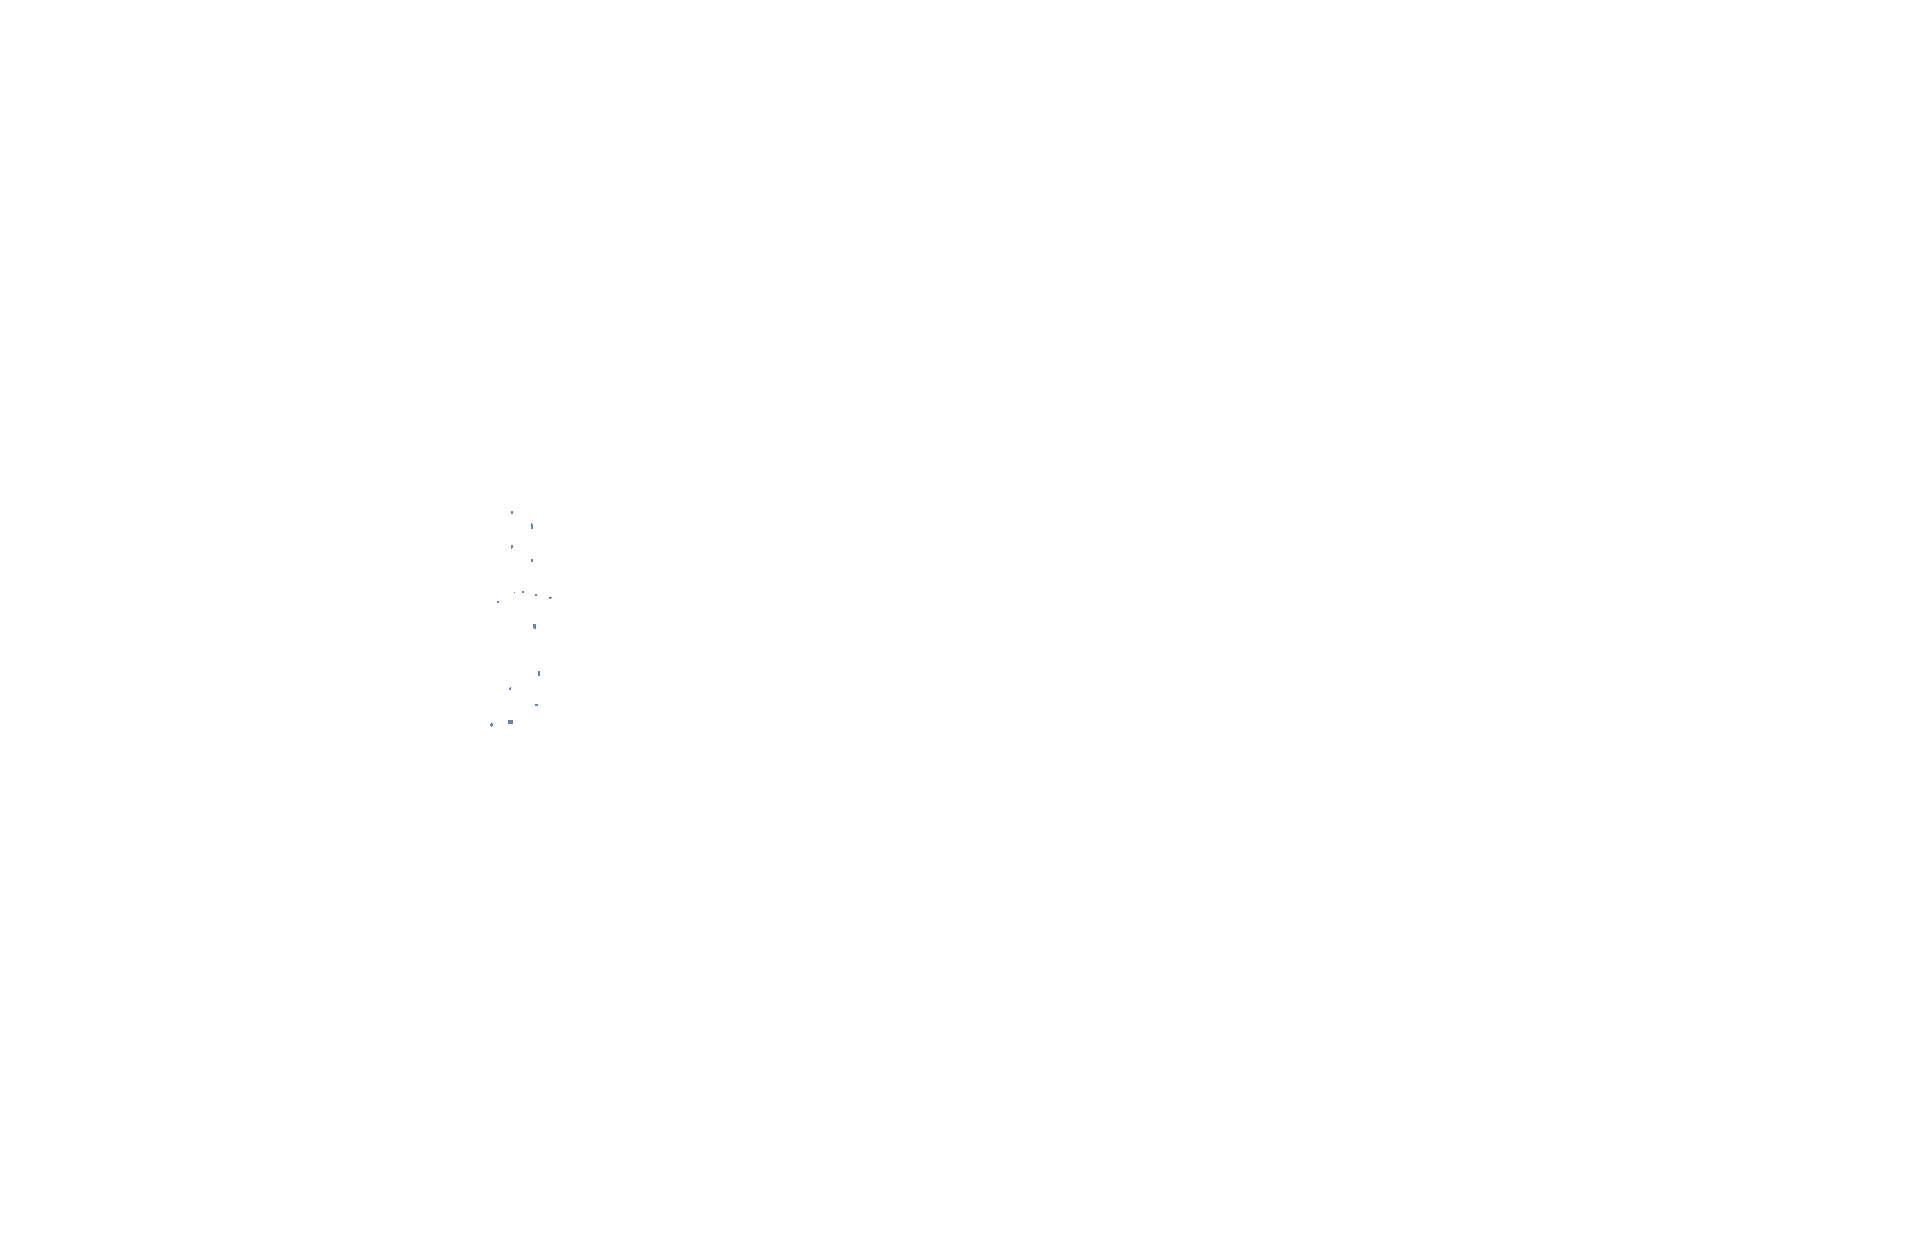 oceansped - icona in negativo